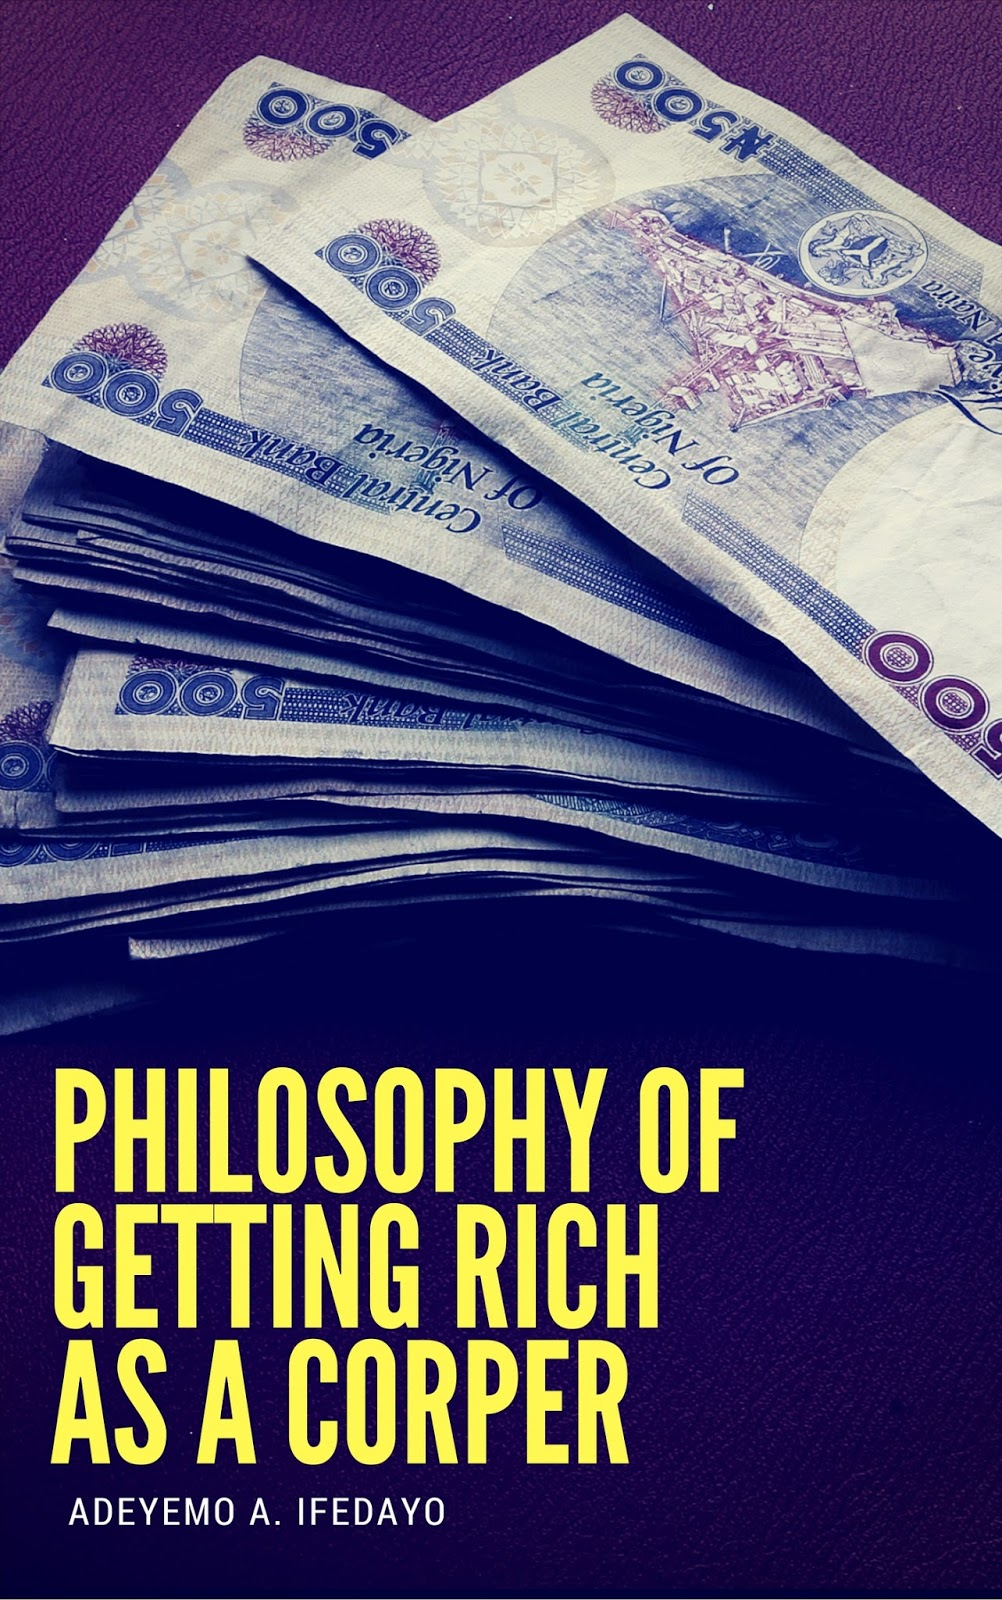 Philosophy Of Getting Rich As A Corper by Adeyemo A. Ifedayo